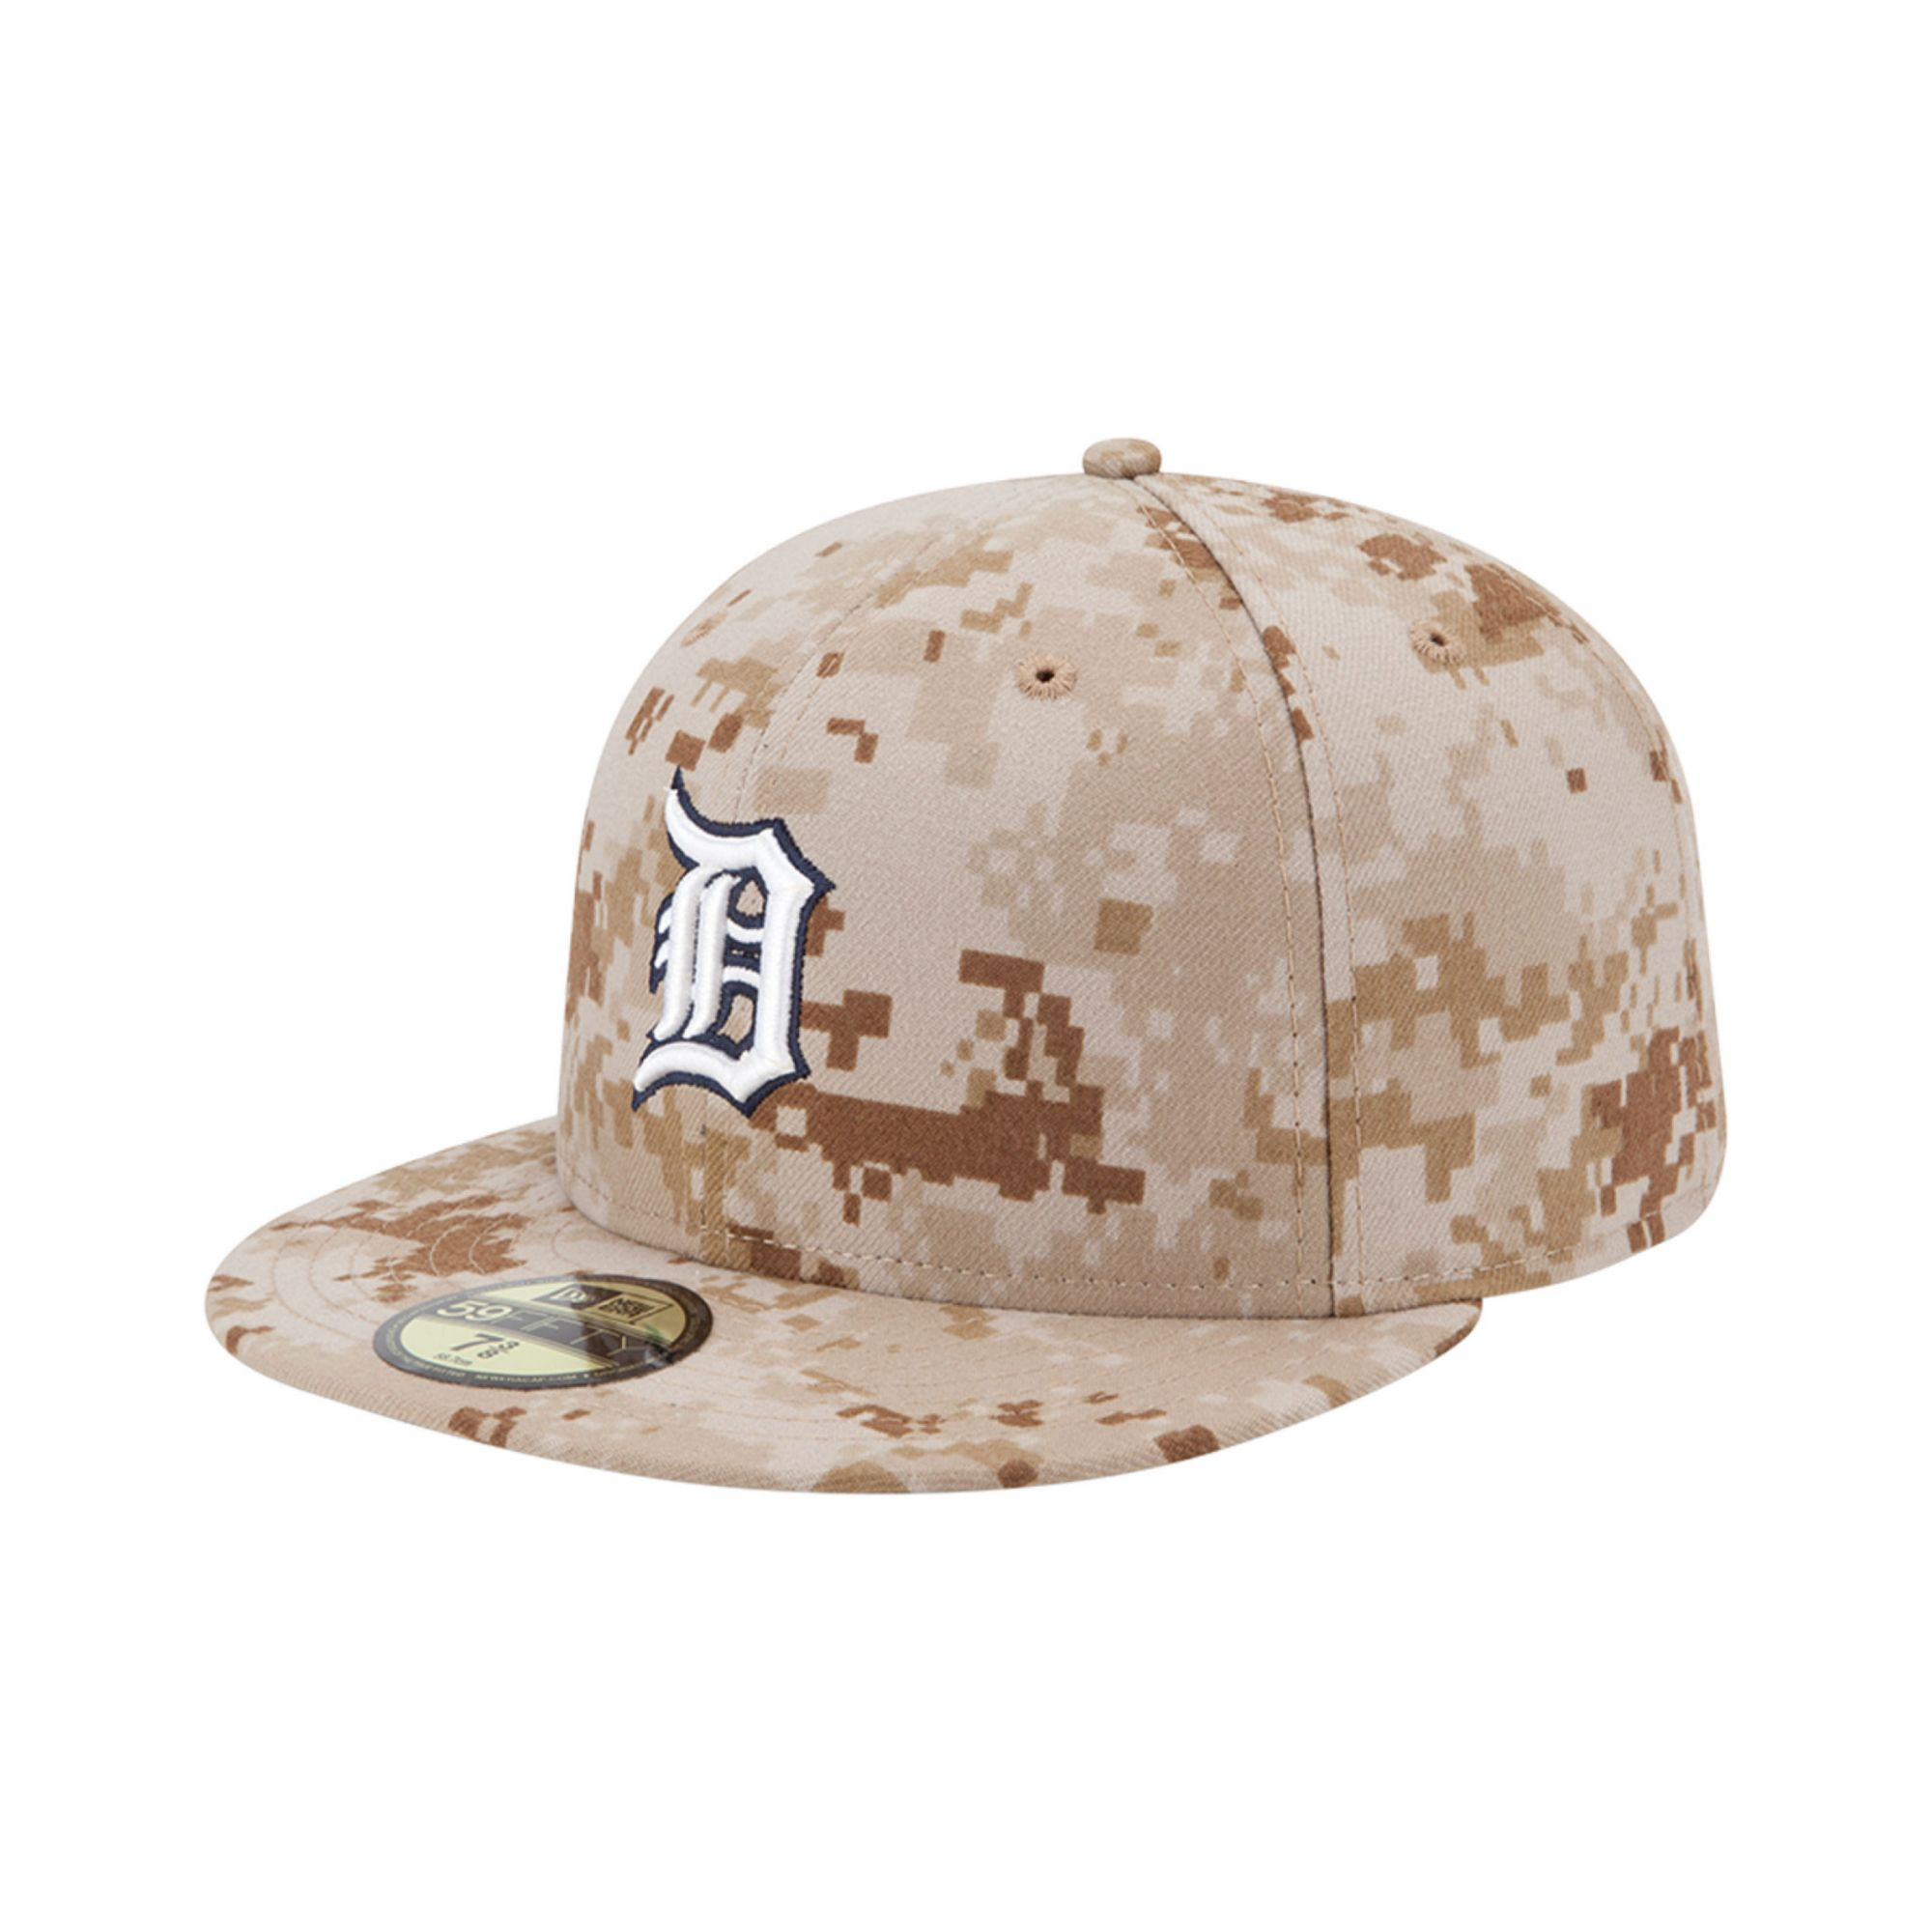 outlet store 5862b 57014 ... promo code for lyst ktz detroit tigers mlb memorial day stars stripes  59fifty cap 3d5c0 b2e1a